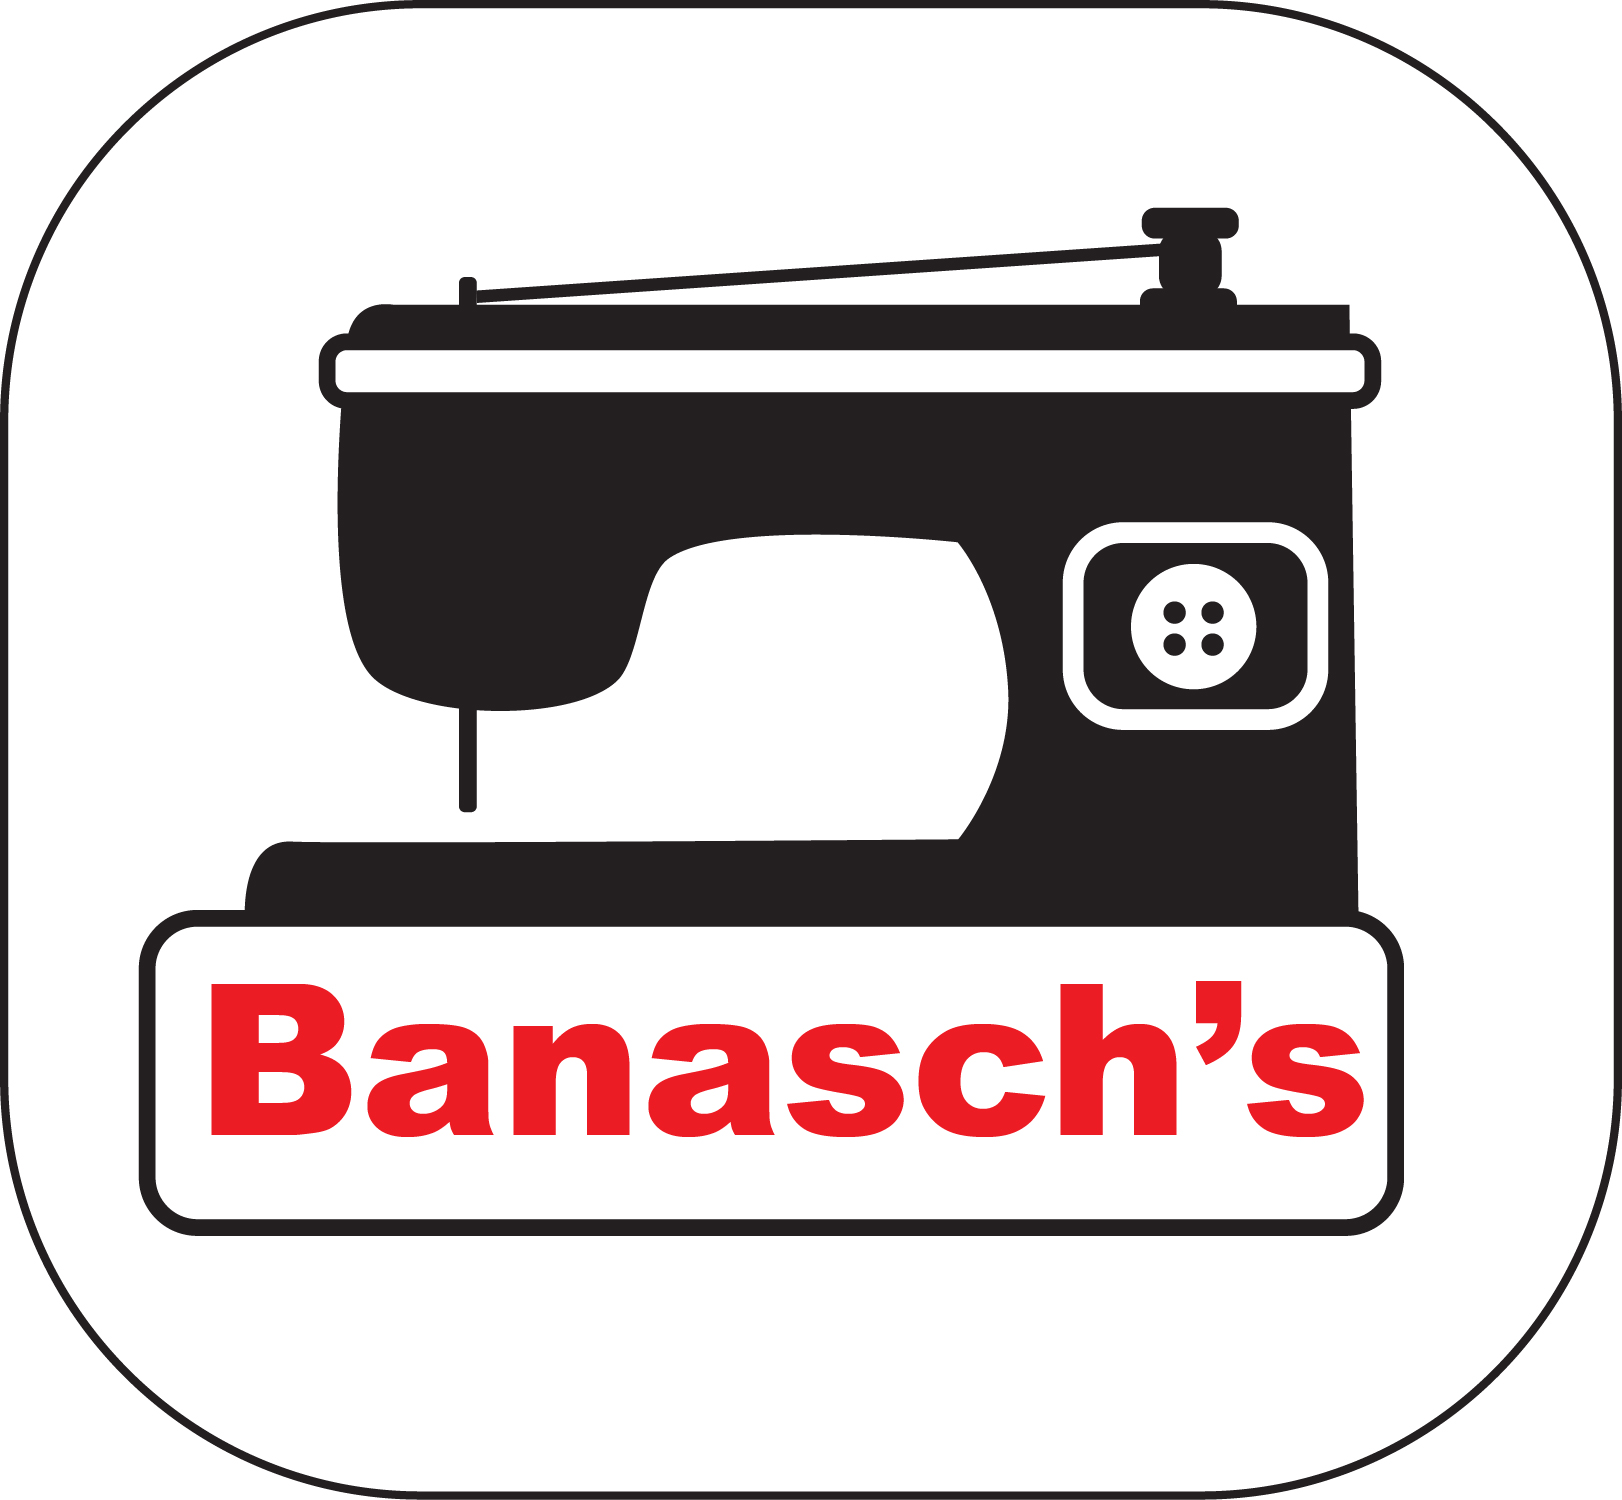 Banasch's Inc. Wholesale Sewing Supplies Distribution, Logo